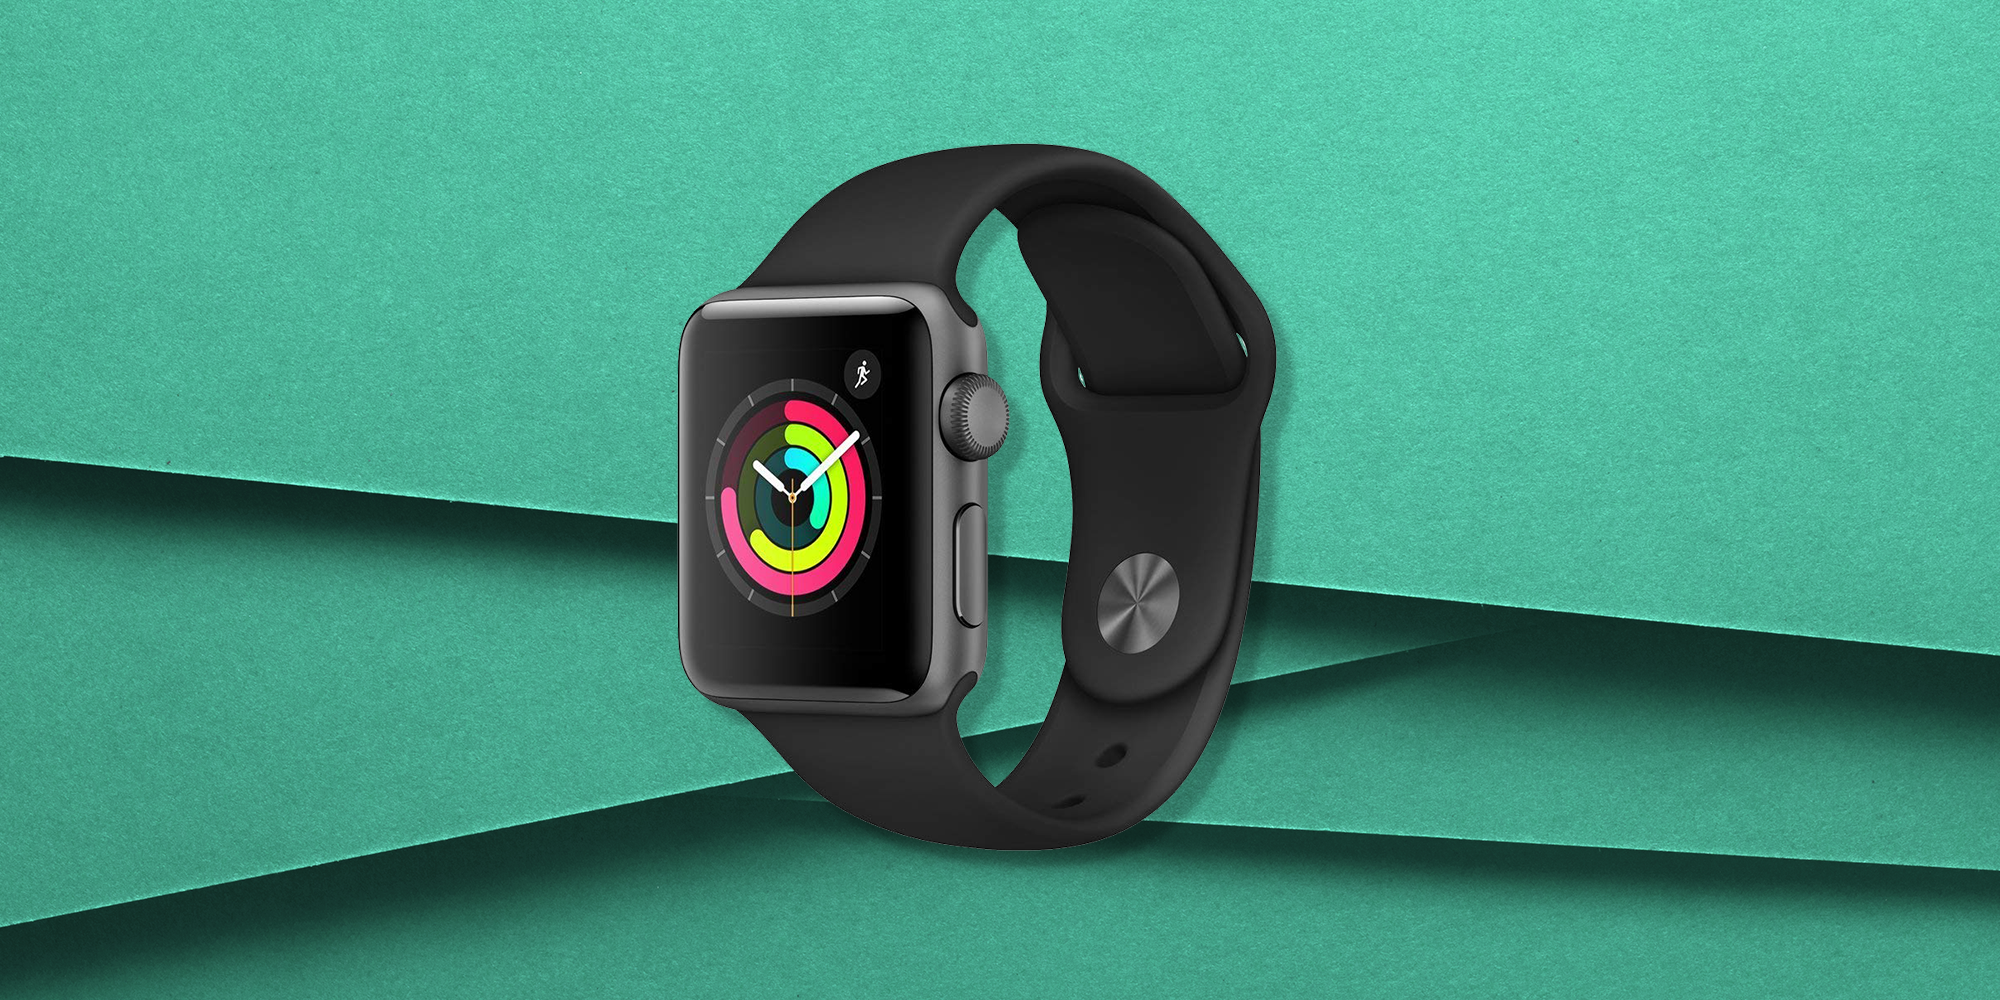 The Apple Watch Series 3 On Sale For $199 On Amazon Prime Day And At Walmart